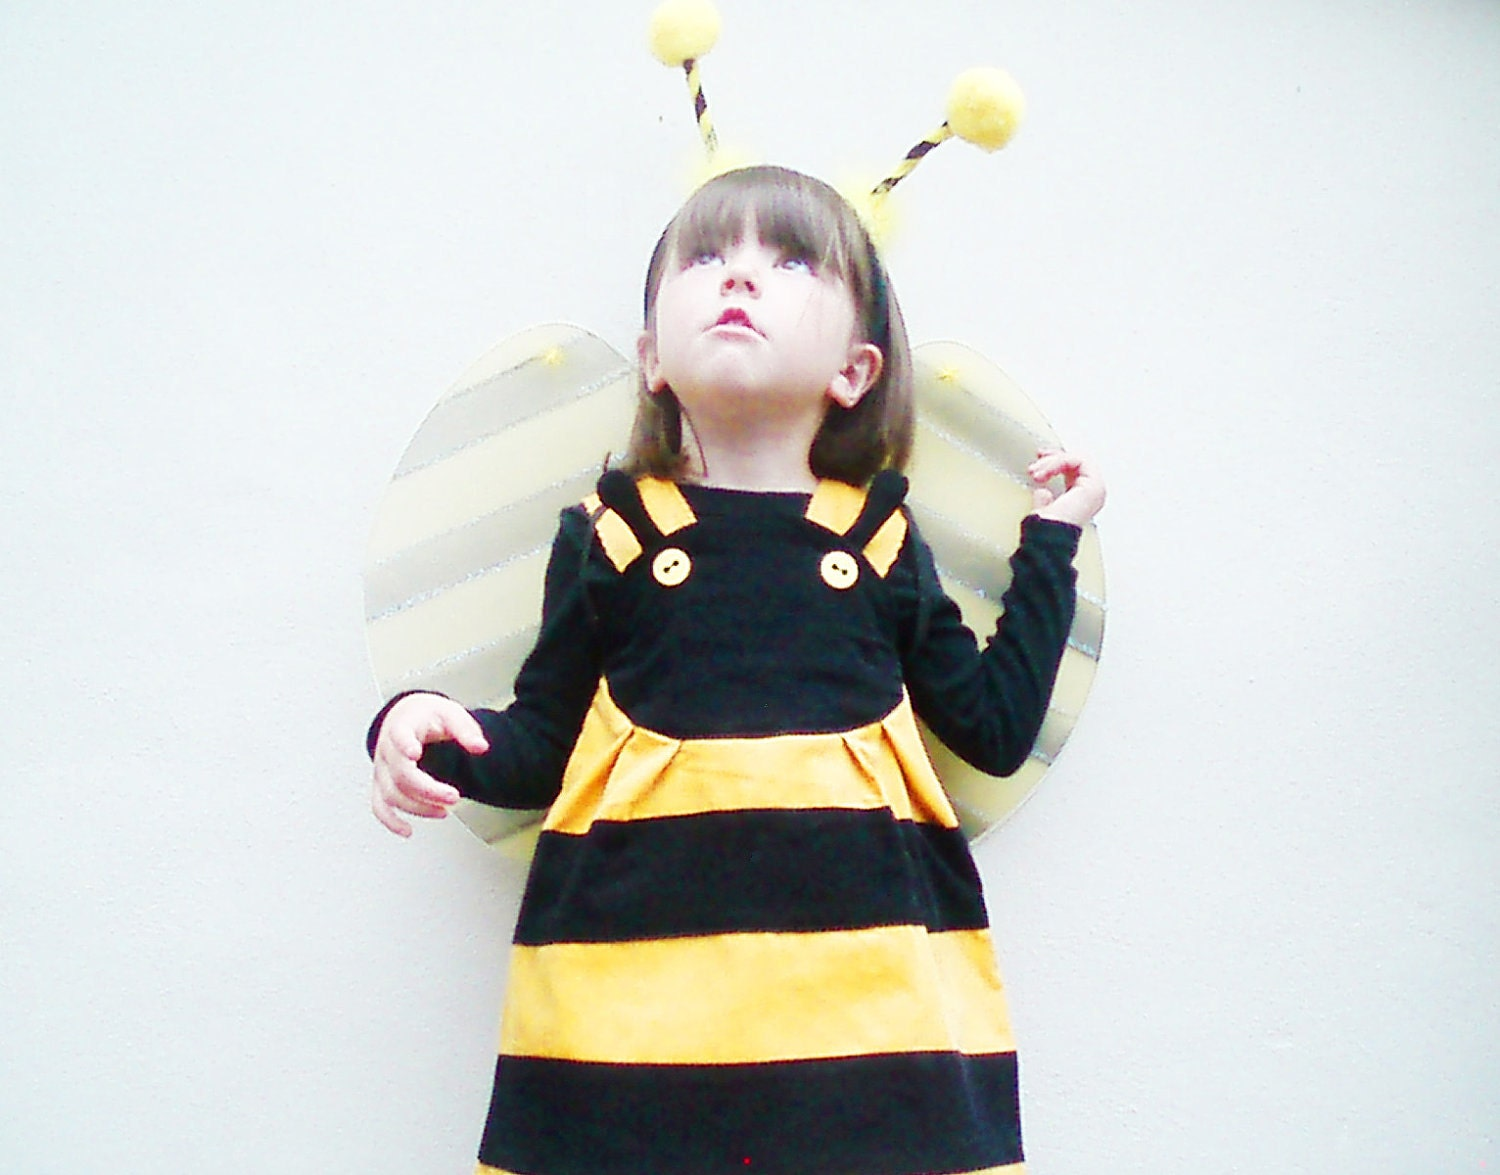 BEE-Girls Dress-yellow & black cotton corduroy-Sizes 6m-1t-2t-3t-4t-5t-6t - wildthingsdresses